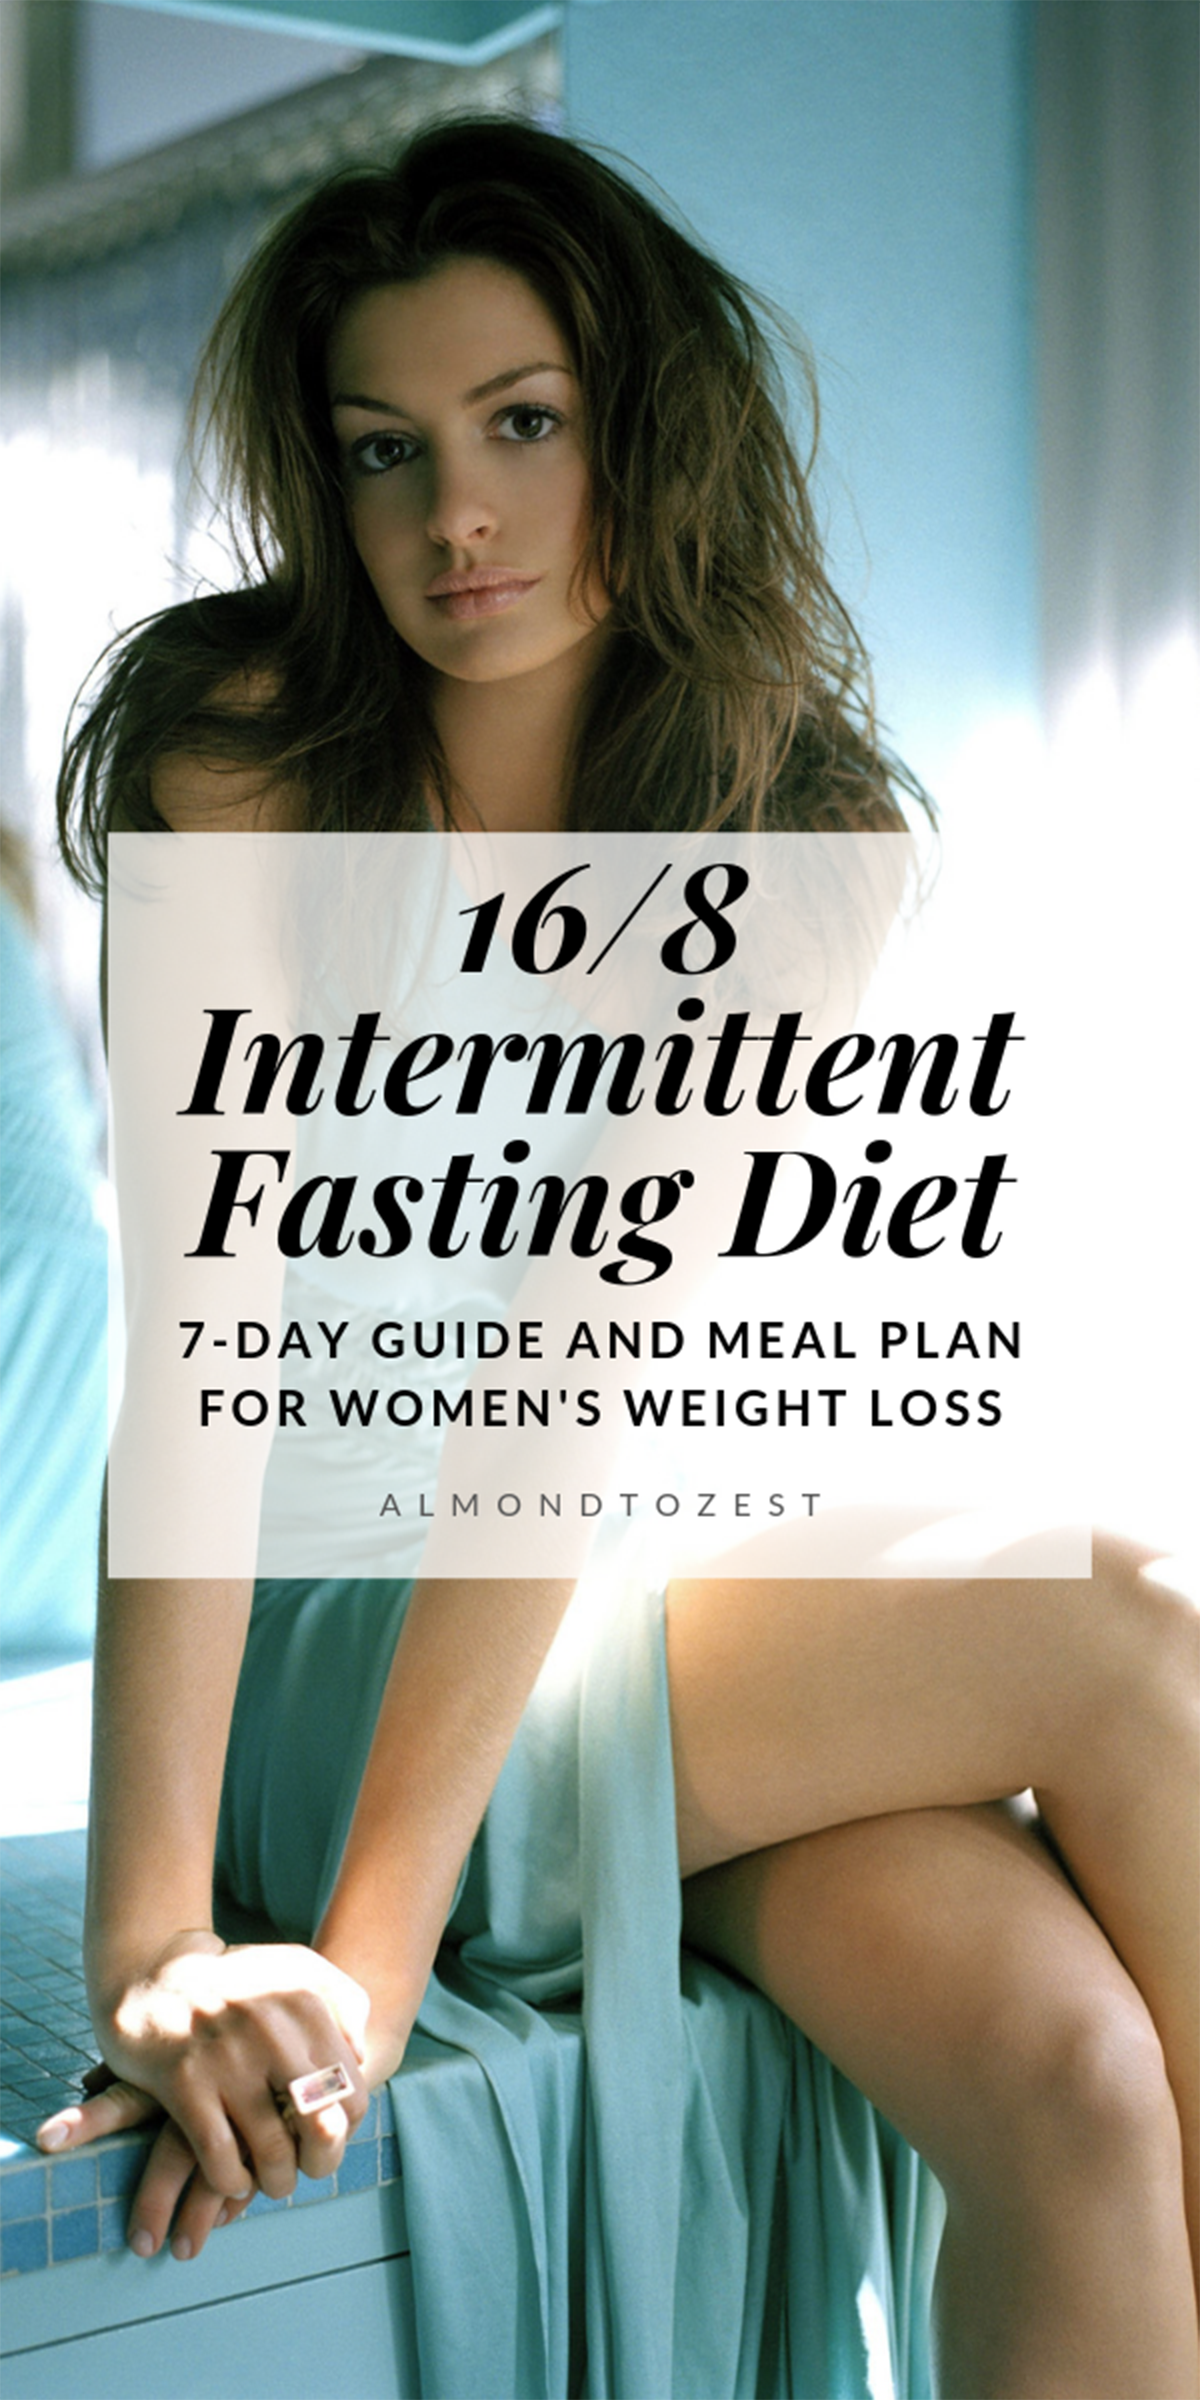 16/8 Fasting: 7-Day Intermittent Fasting Meal Plan to Lose